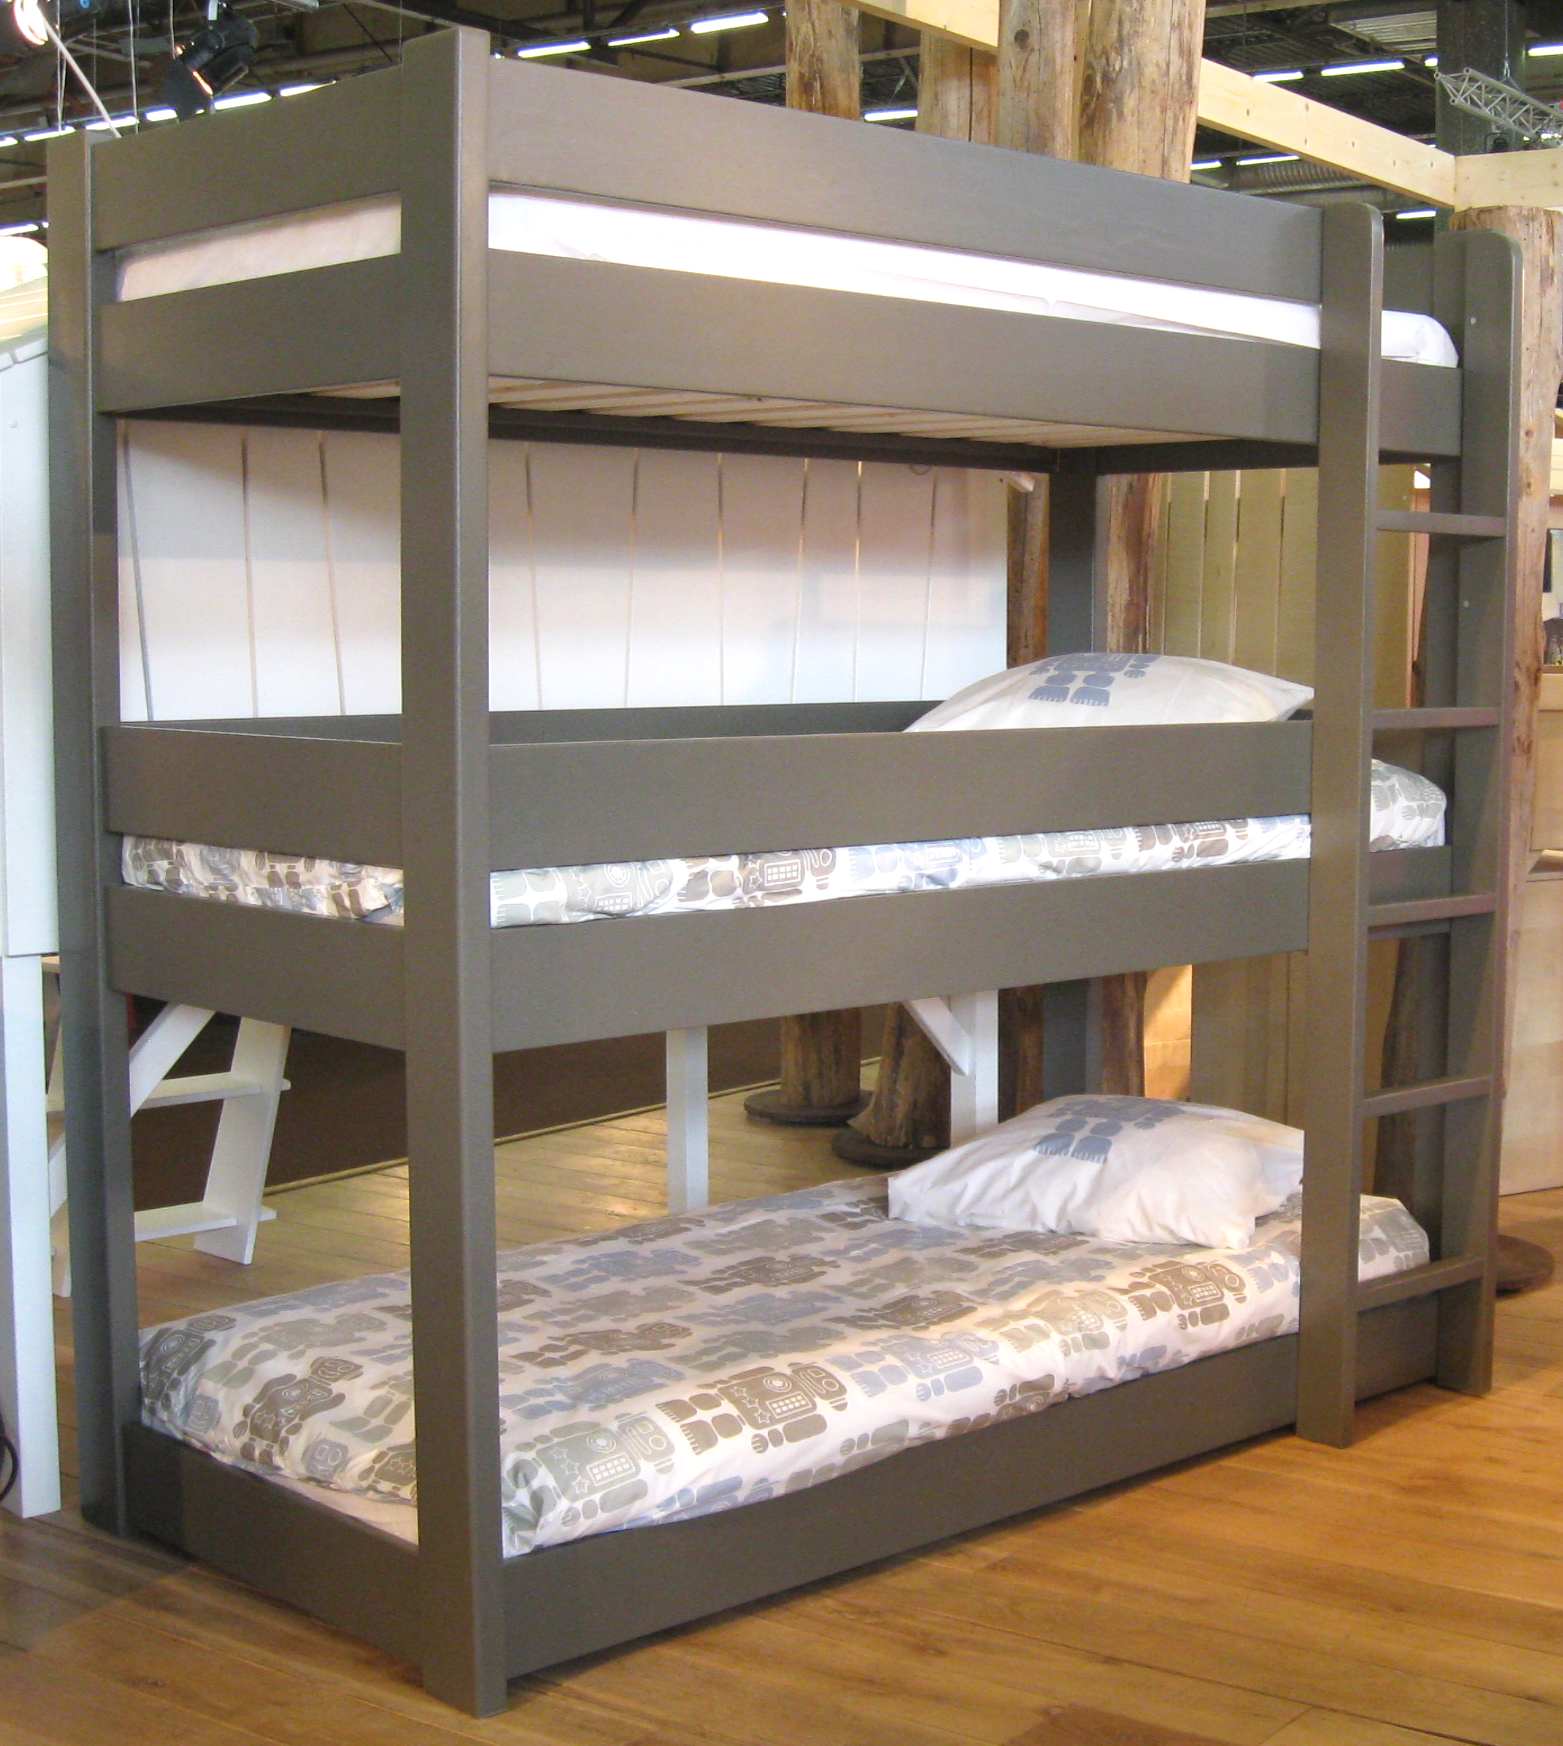 Kidszone furniture bunk bed 20 for Furniture zone beds